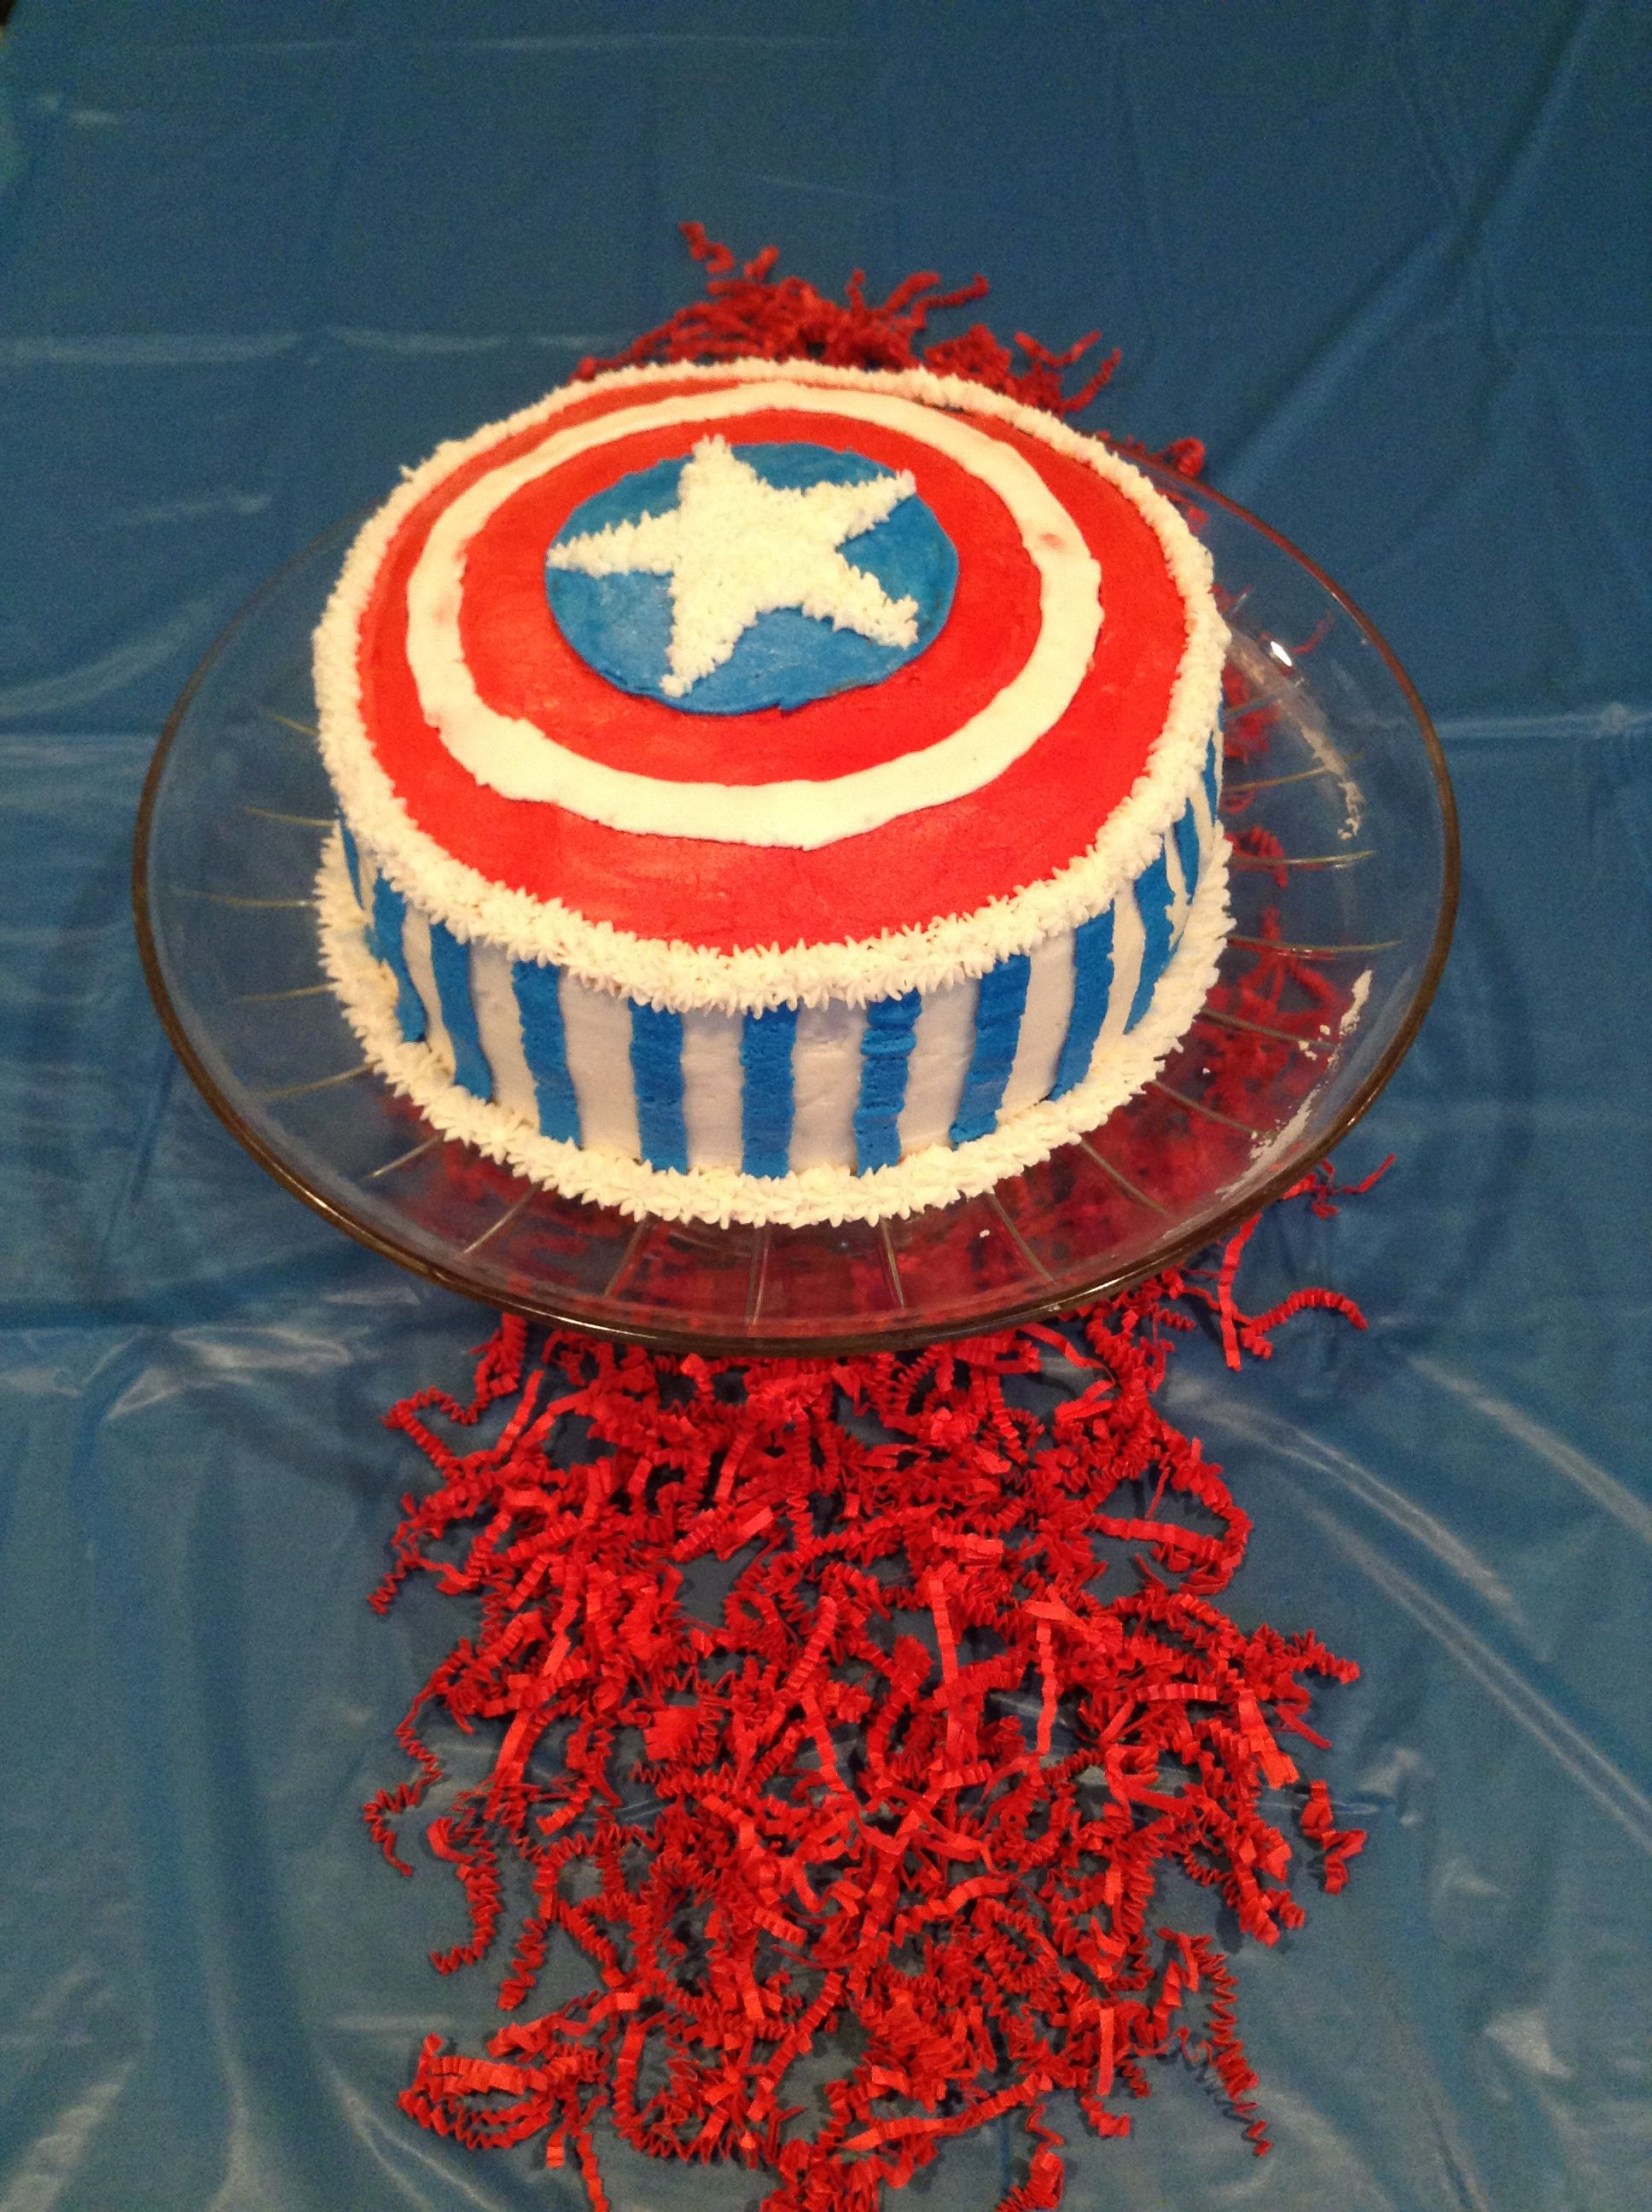 Awesome 10 Year Old Boys Birthday Cake Captain America Cake Captain America Shield Awesome Cakes Boy Birthday Cake America Cake Cool Birthday Cakes